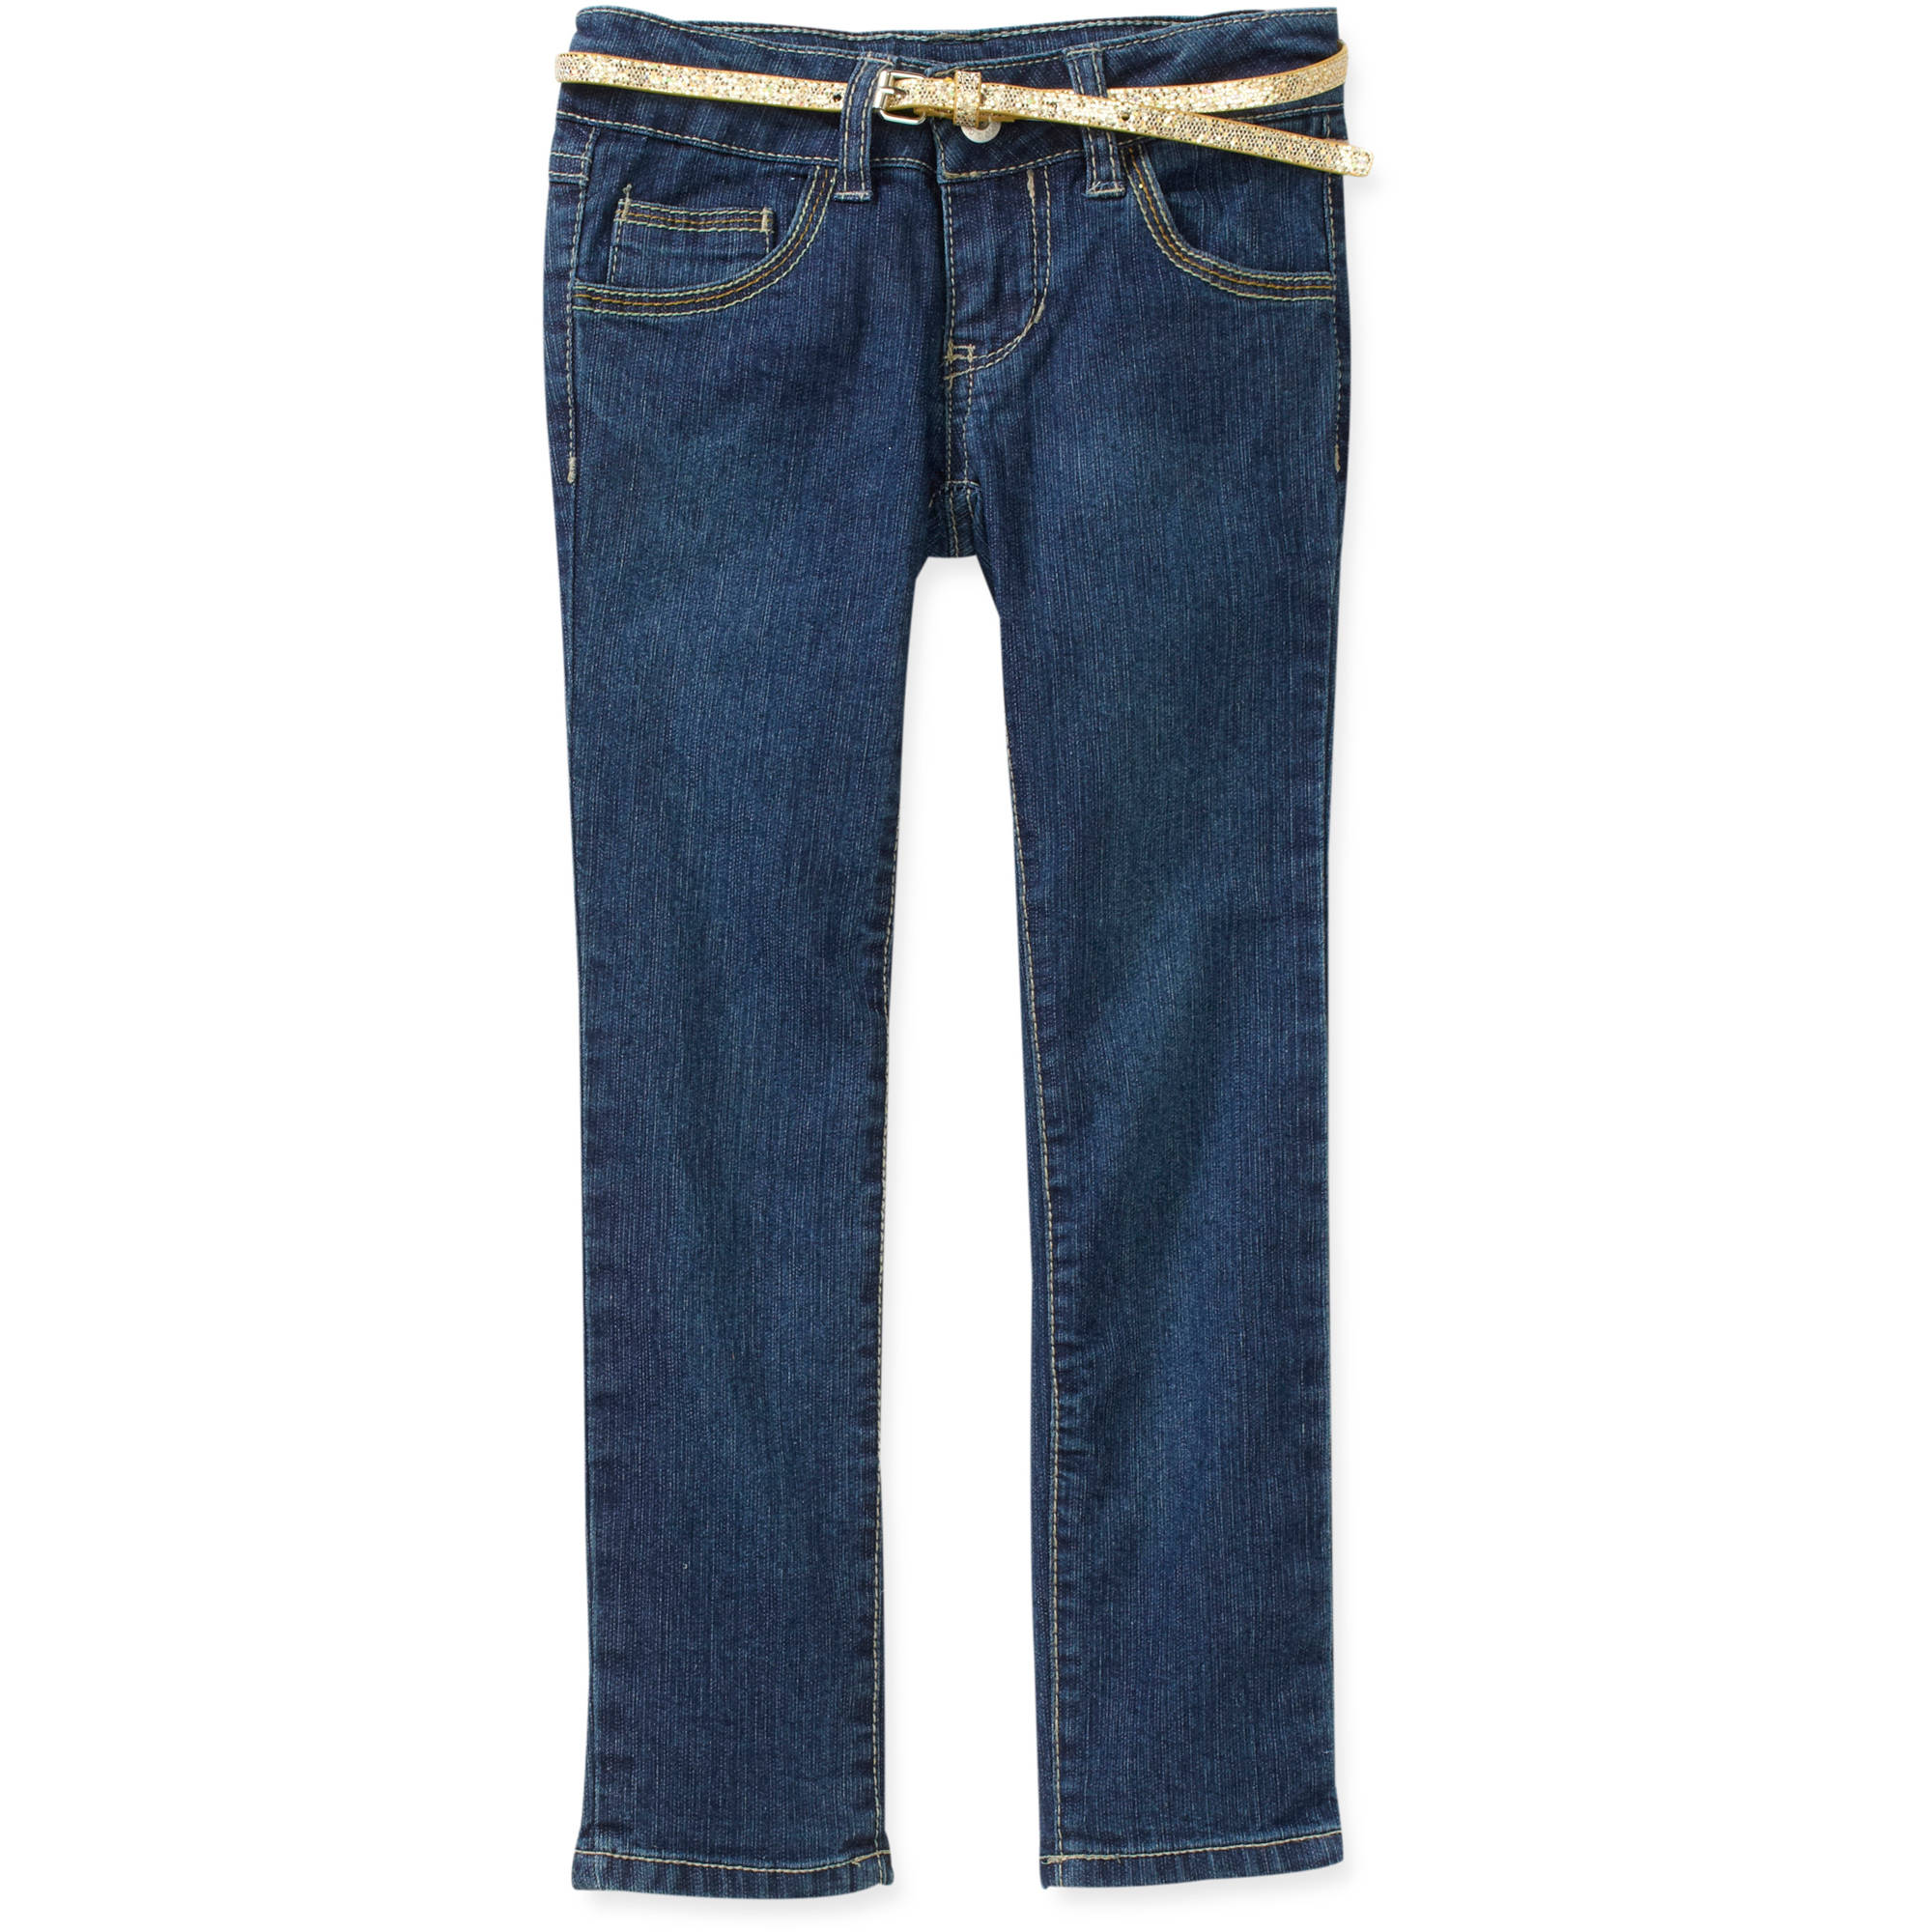 Faded Glory - Girls' Embroidery Skinny D